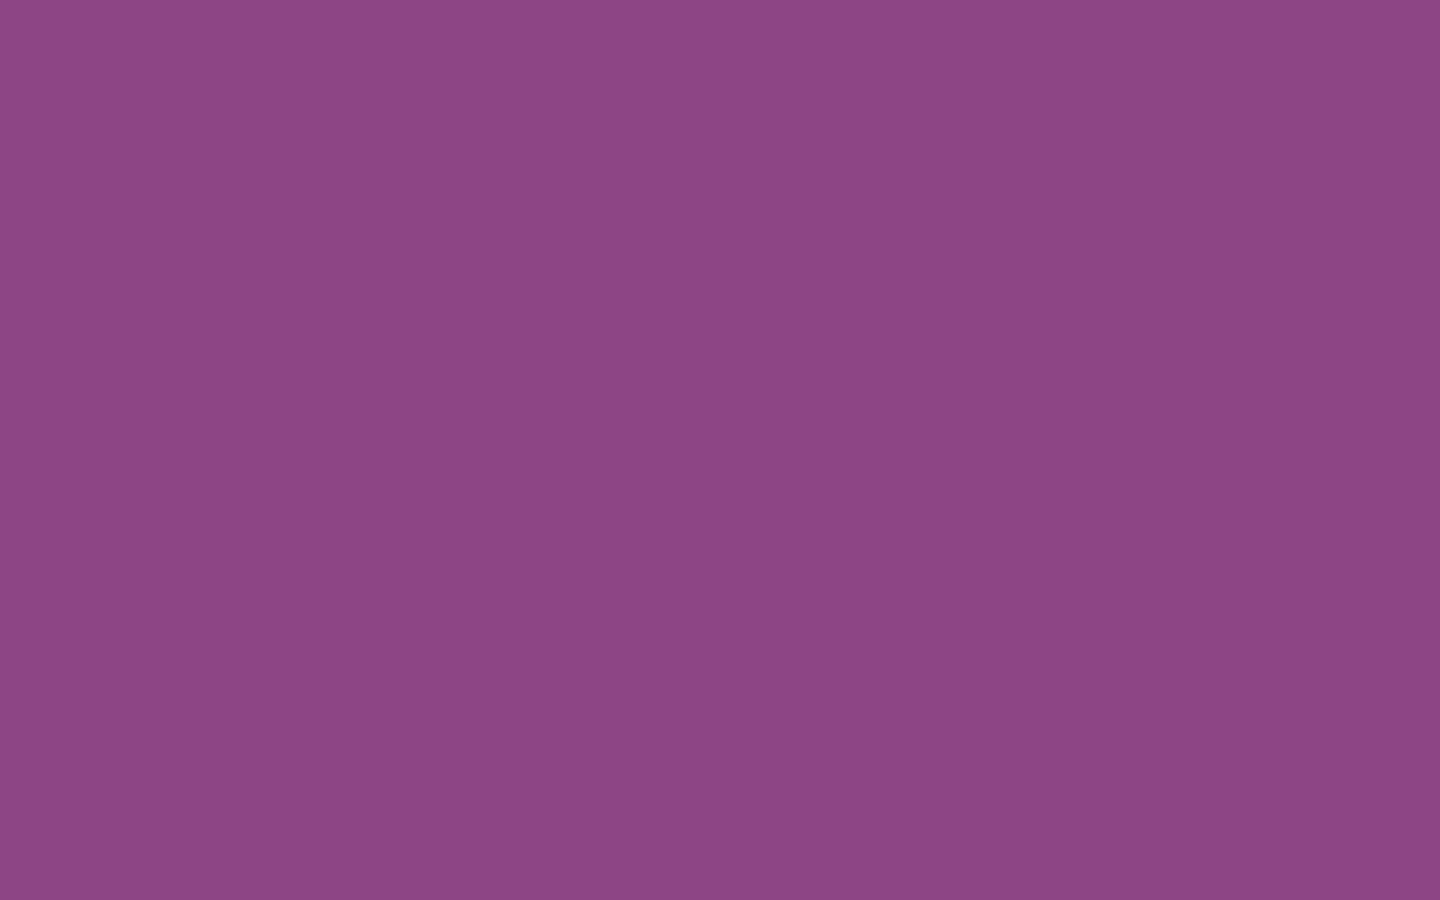 1440x900 Plum Traditional Solid Color Background